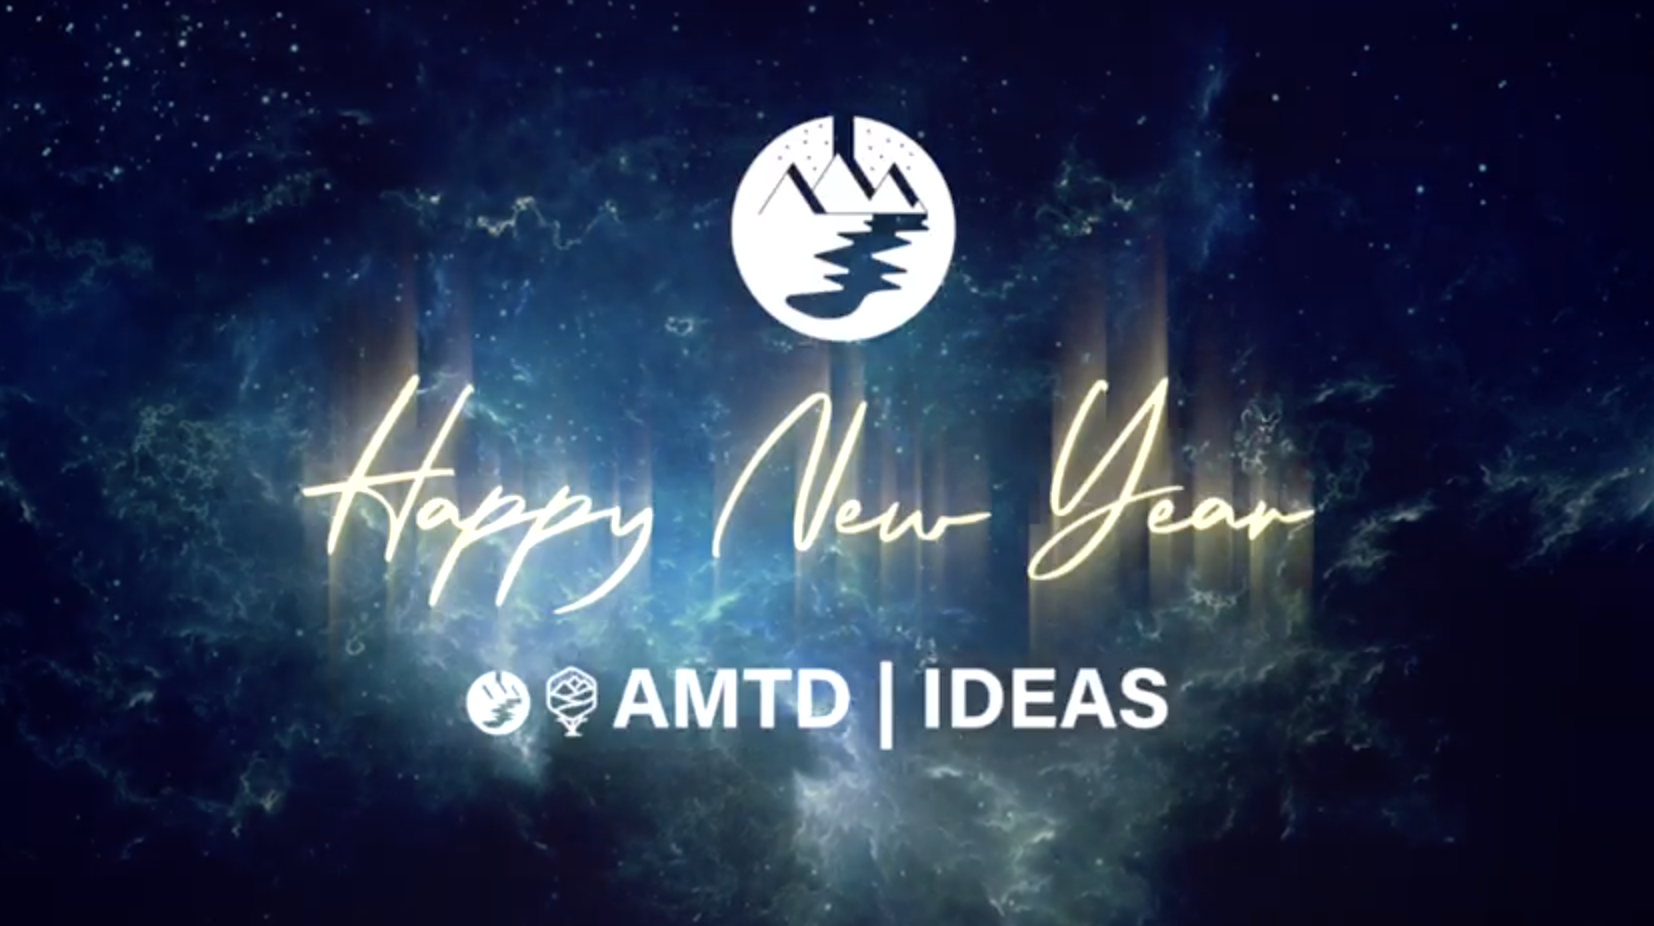 New Year's Greeting from AMTD